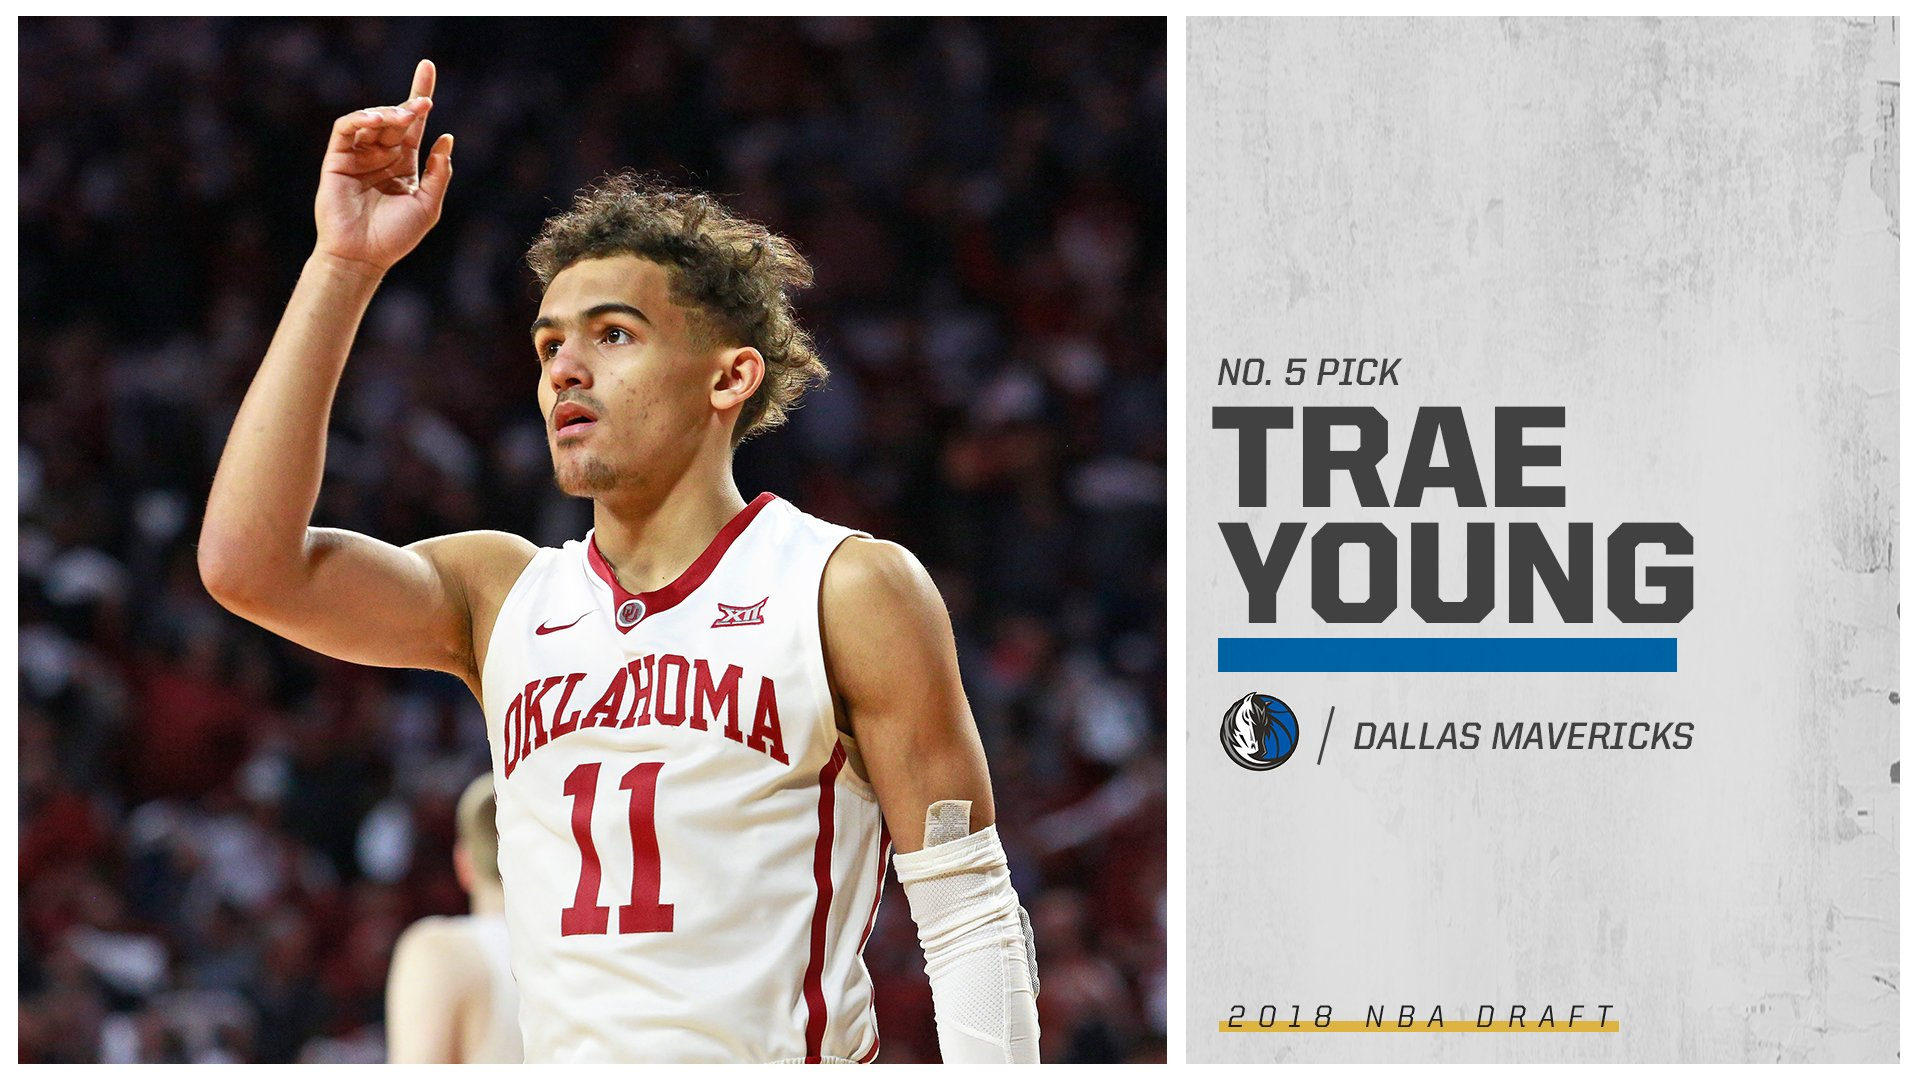 The Hawks have their man.  Trae Young is selected No. 5 overall and is reportedly headed to Atlanta. https://t.co/p4NUU7dzFs